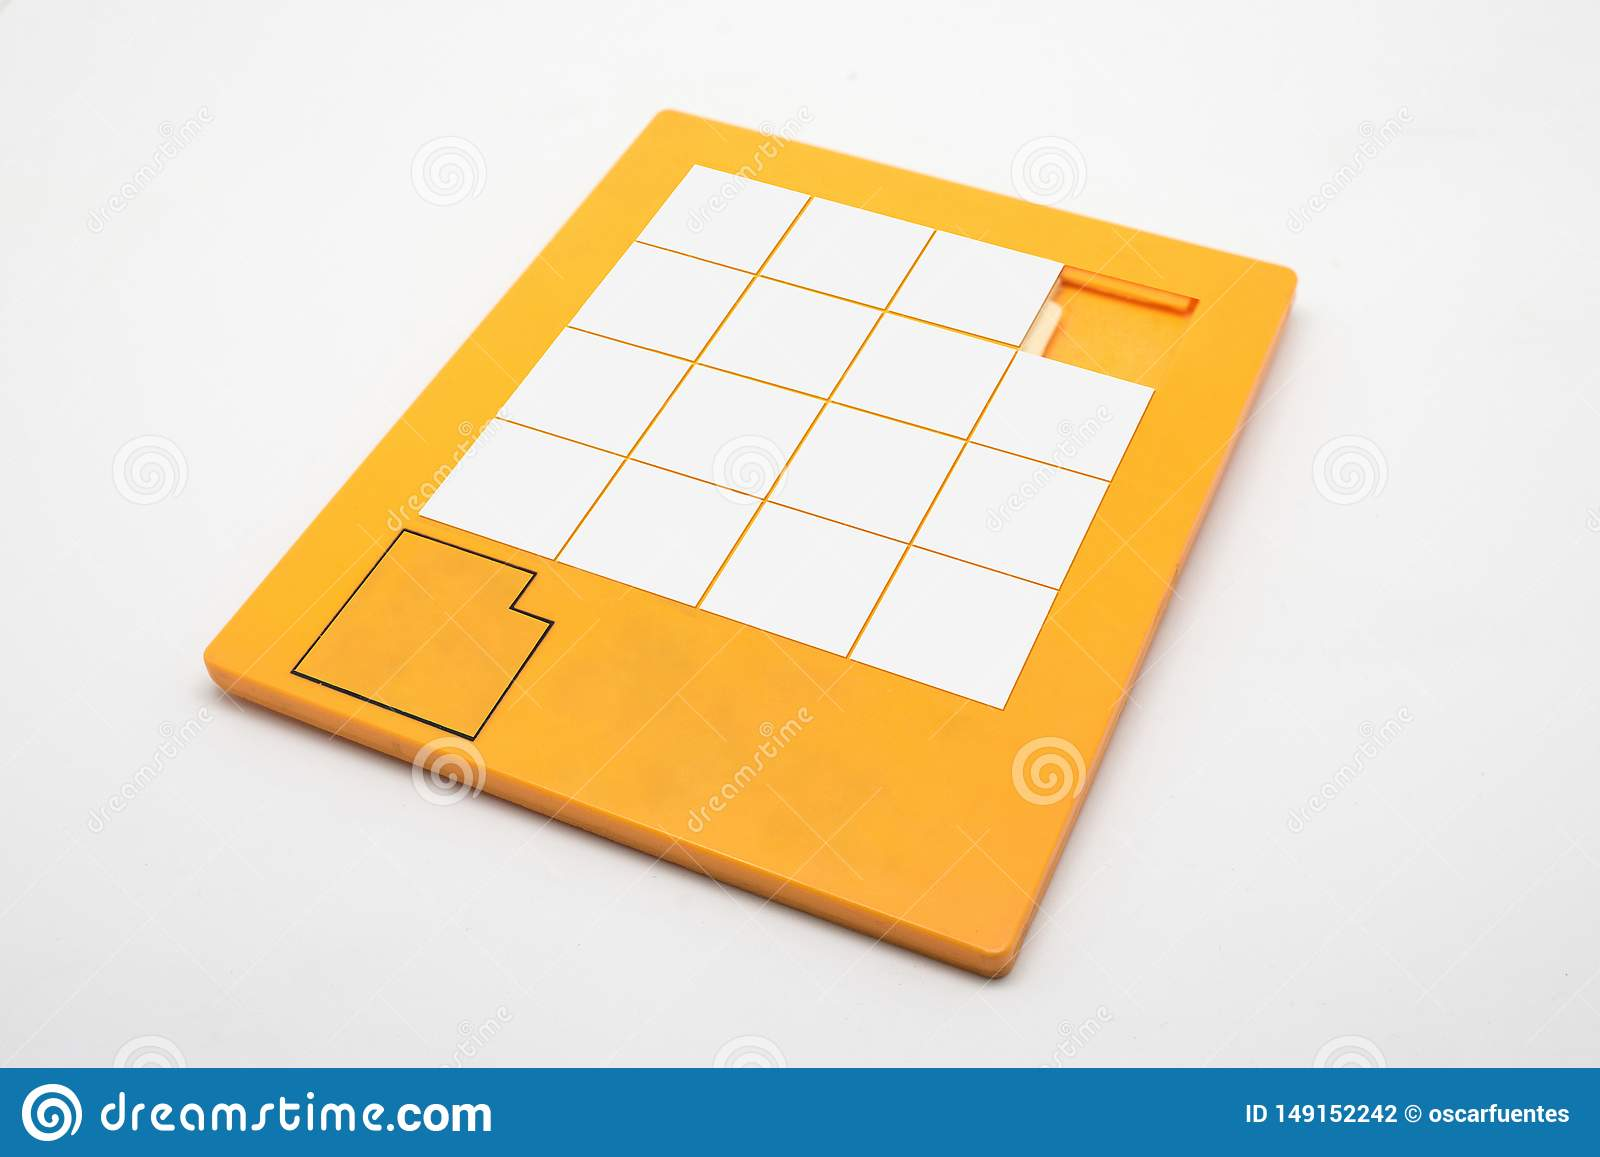 Blank puzzle game to fill